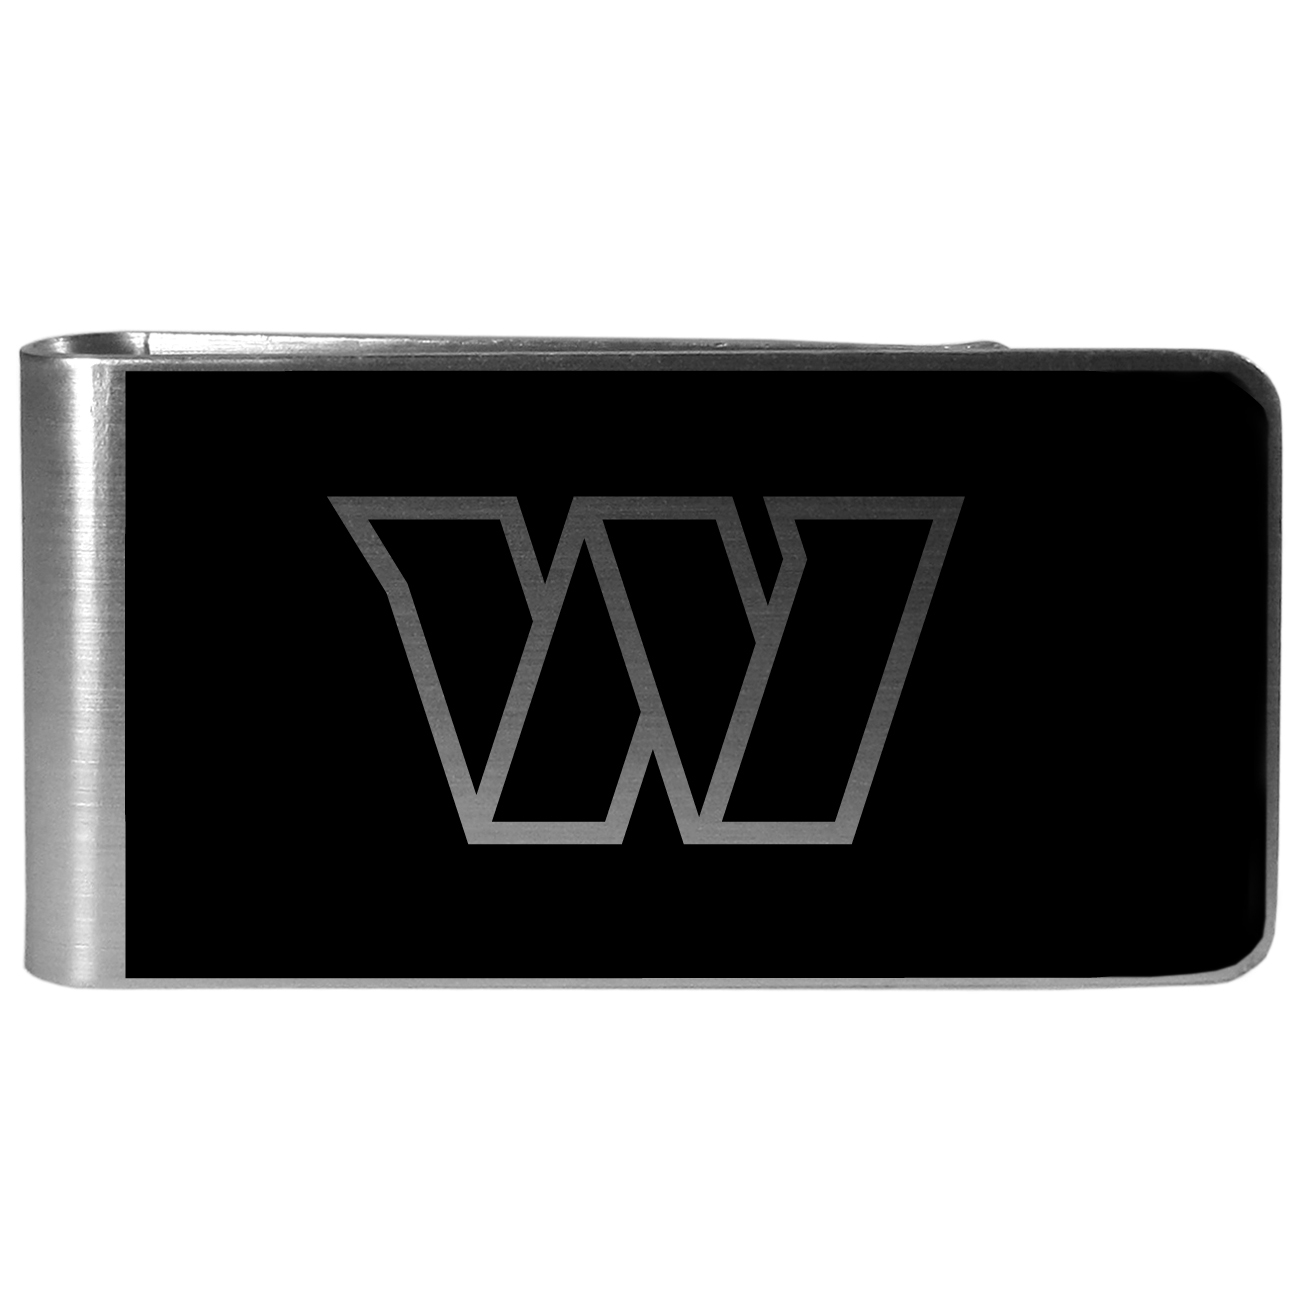 Washington Redskins Black and Steel Money Clip - Our monochromatic steel money clips have a classic style and superior quality. The strong, steel clip has a black overlay of the Washington Redskins logo over the brushed metal finish creating a stylish men's fashion accessory that would make any fan proud.